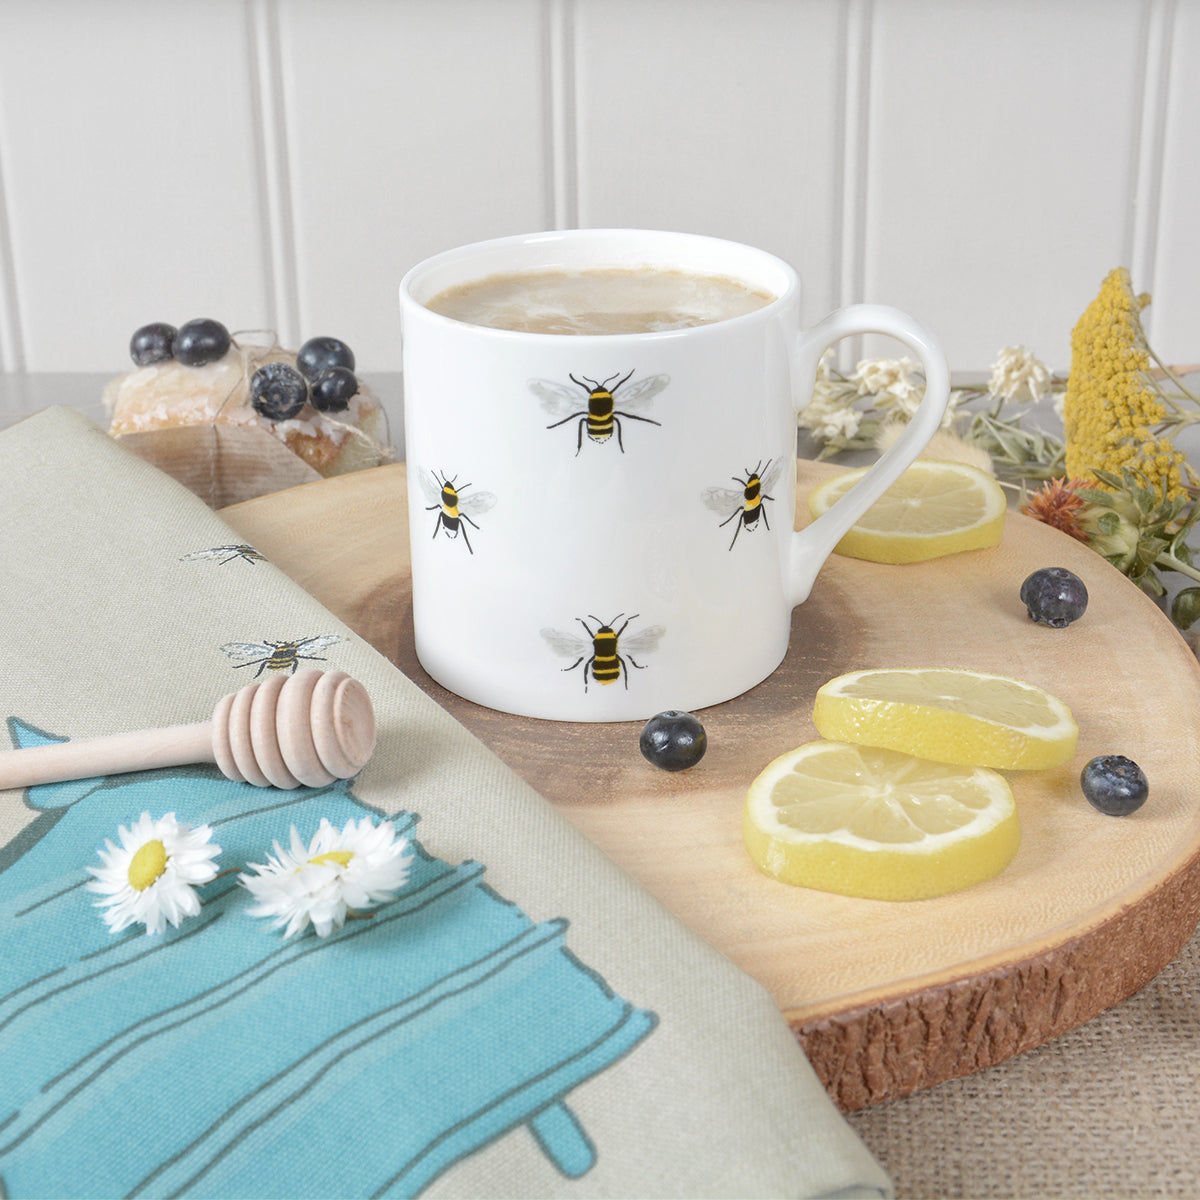 Bees Mug made from fine bone china